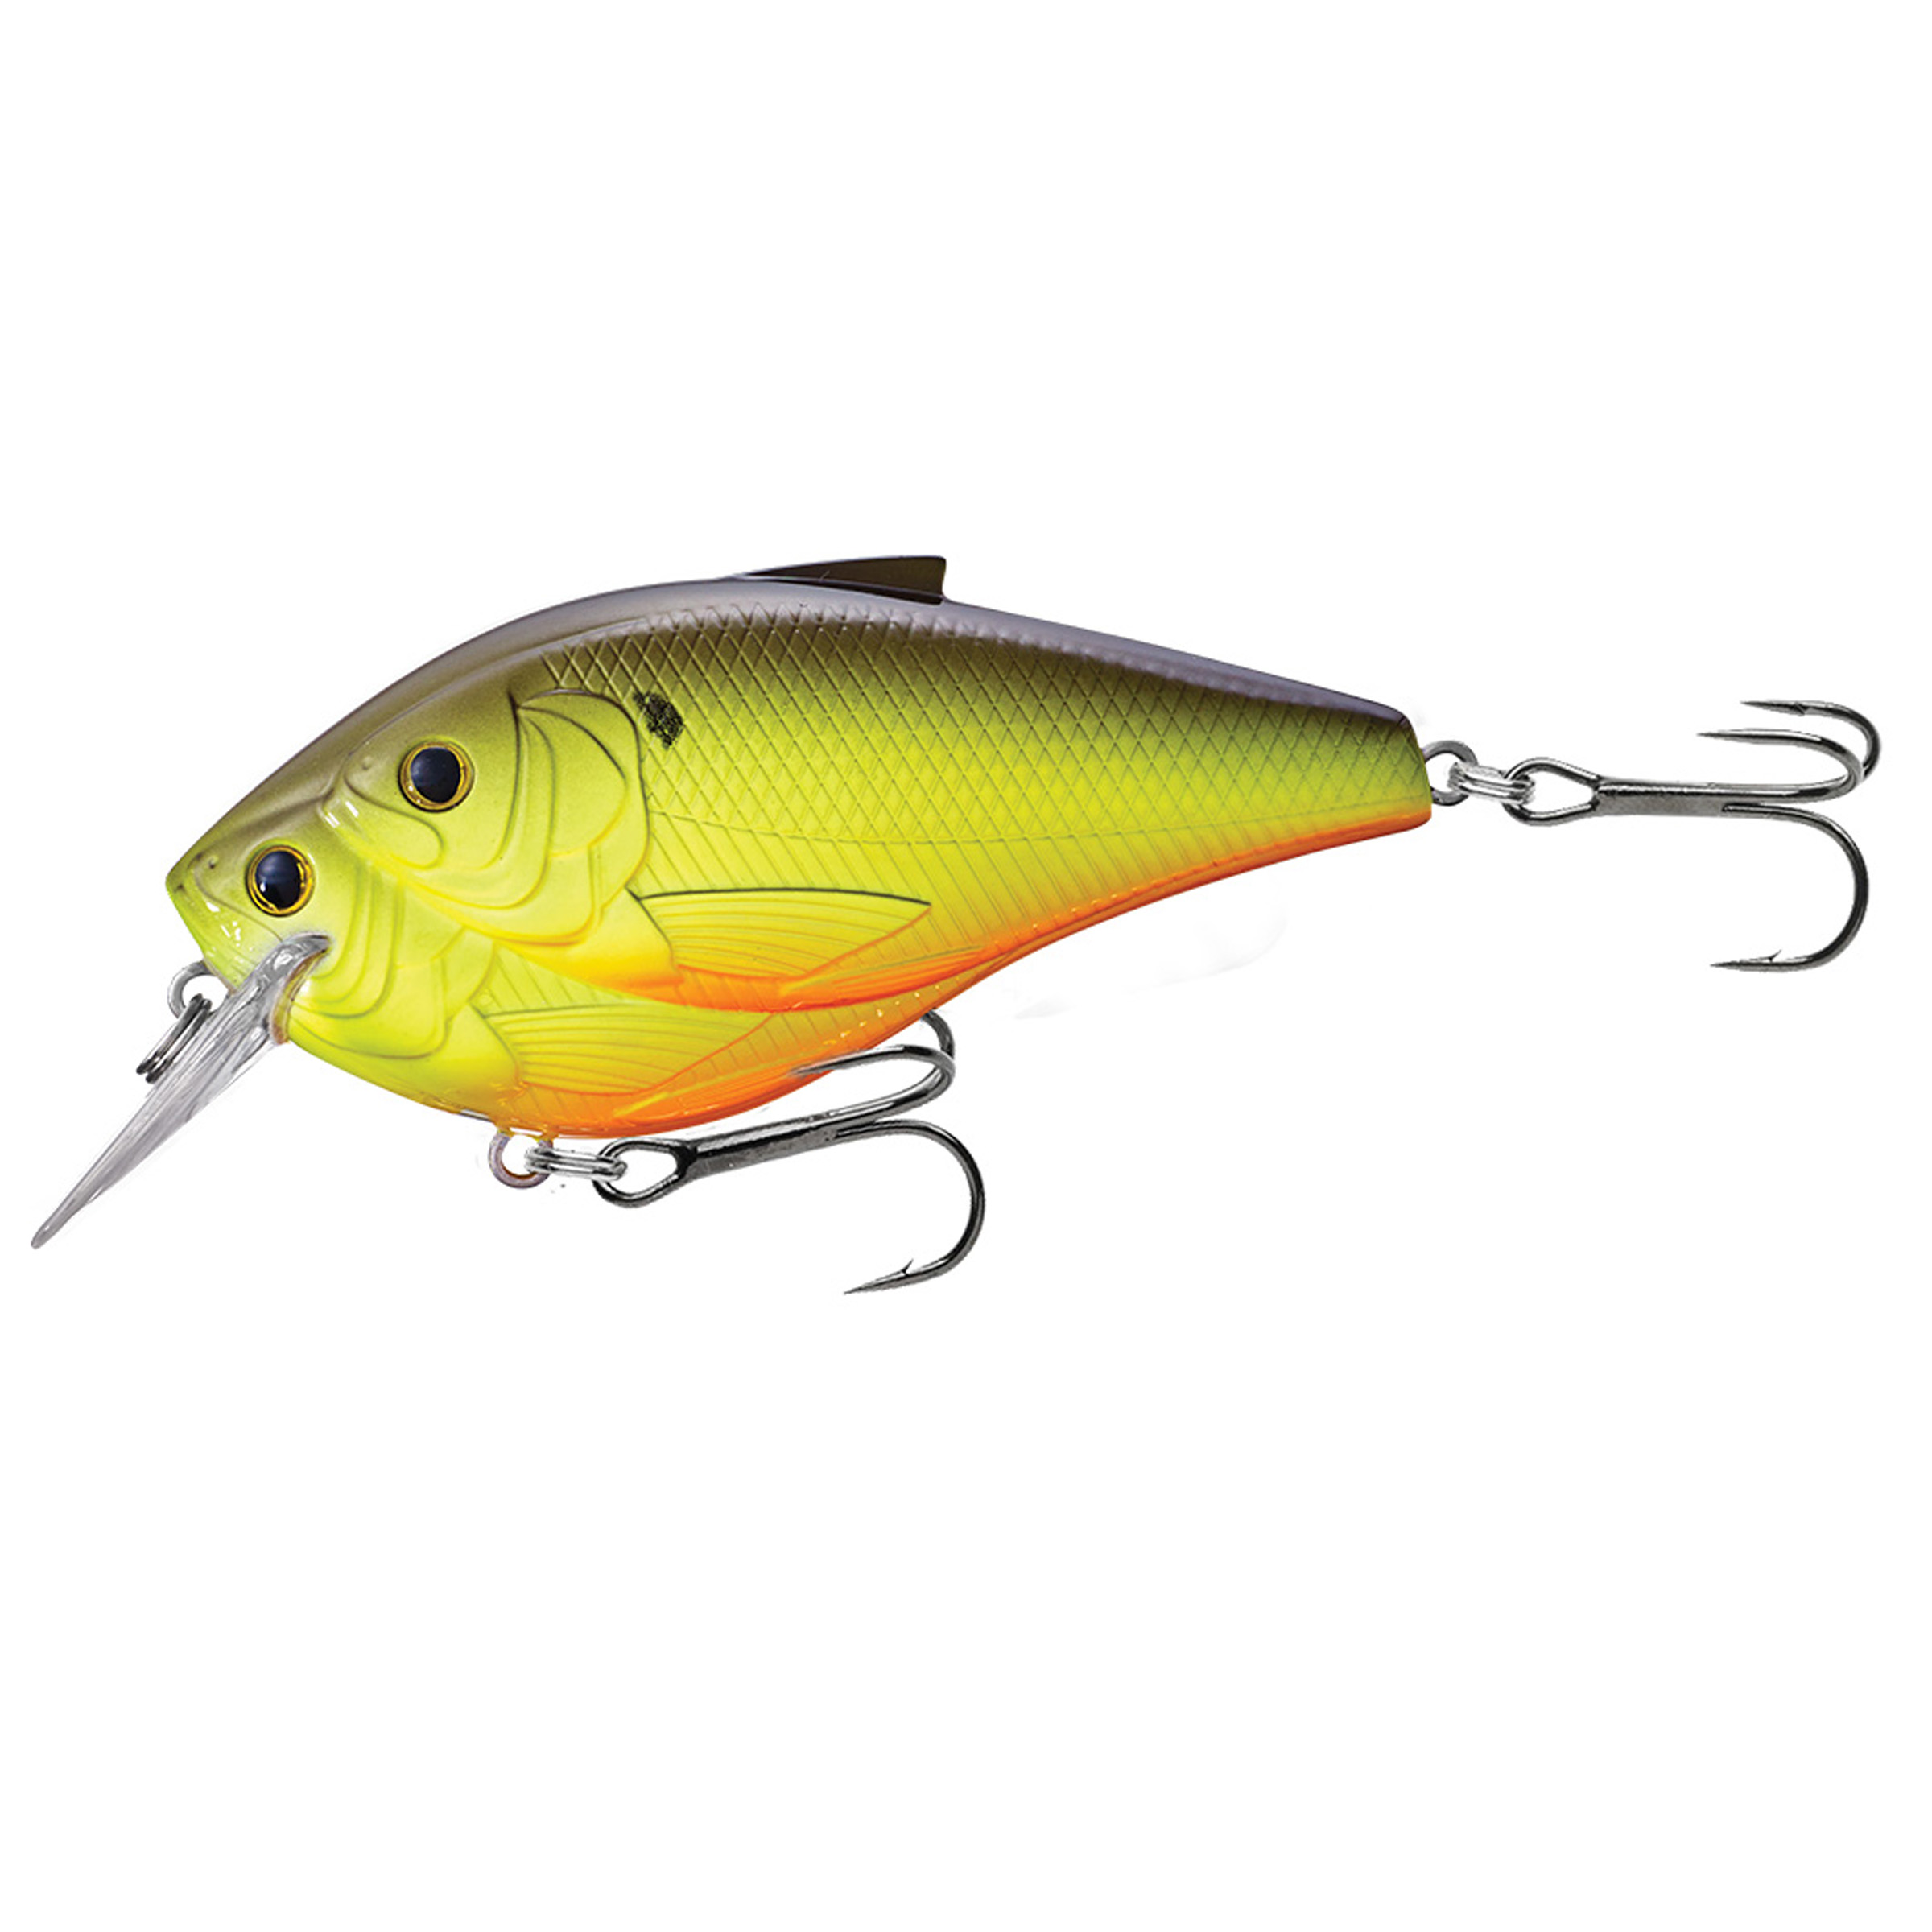 "LiveTarget Threadfin Shad Squarebill Freshwater, 3"", #1 Hook, 4'-5' Depth, Metallic Chartreuse/Black"